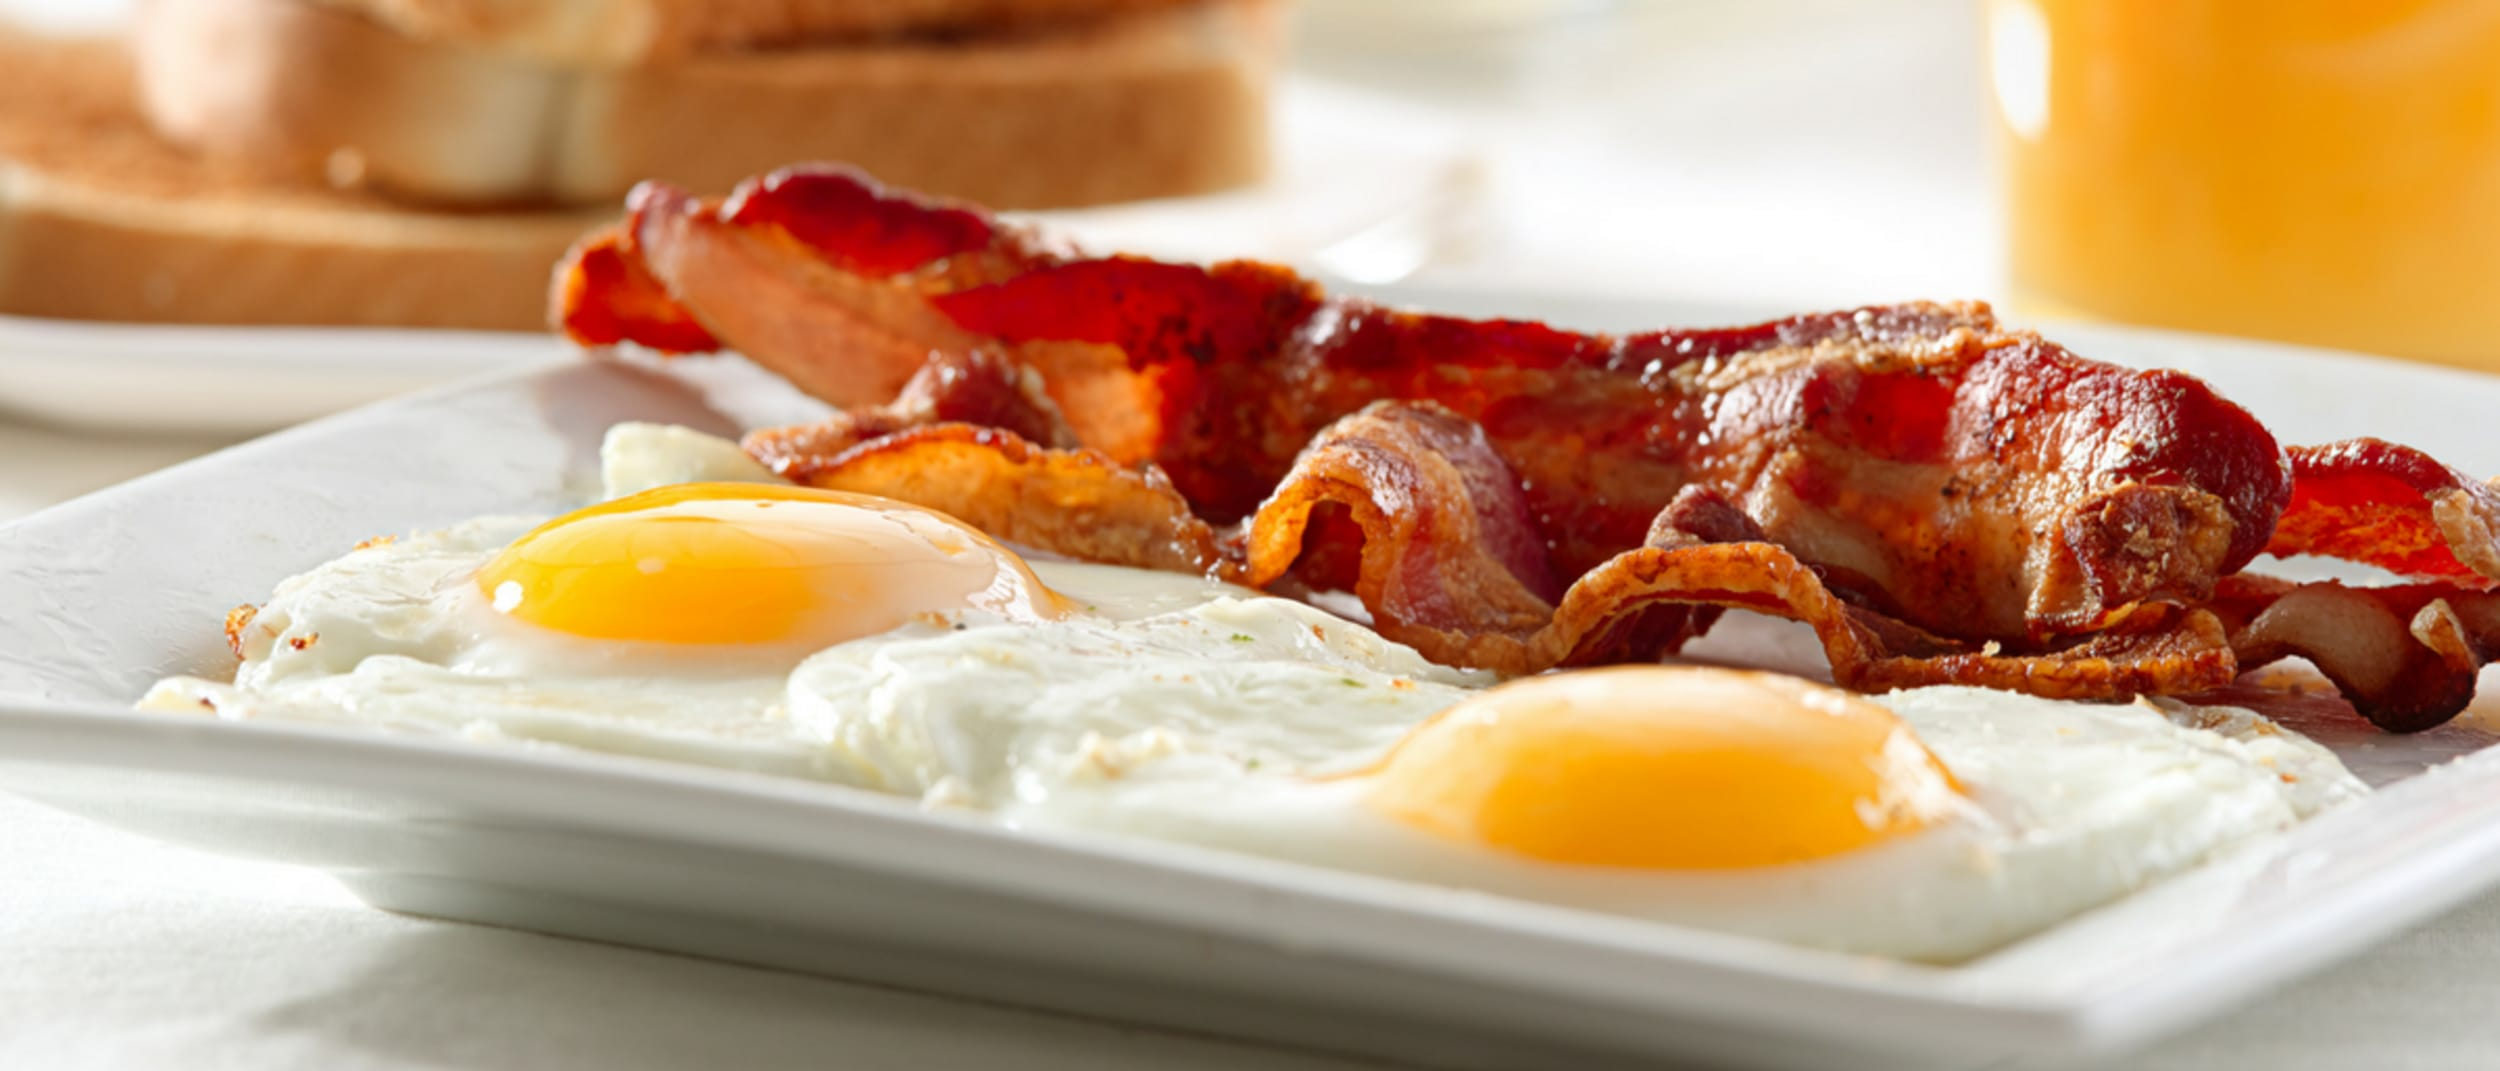 Barcella: bacon, scrambled eggs, hashbrown and toast for $9.90